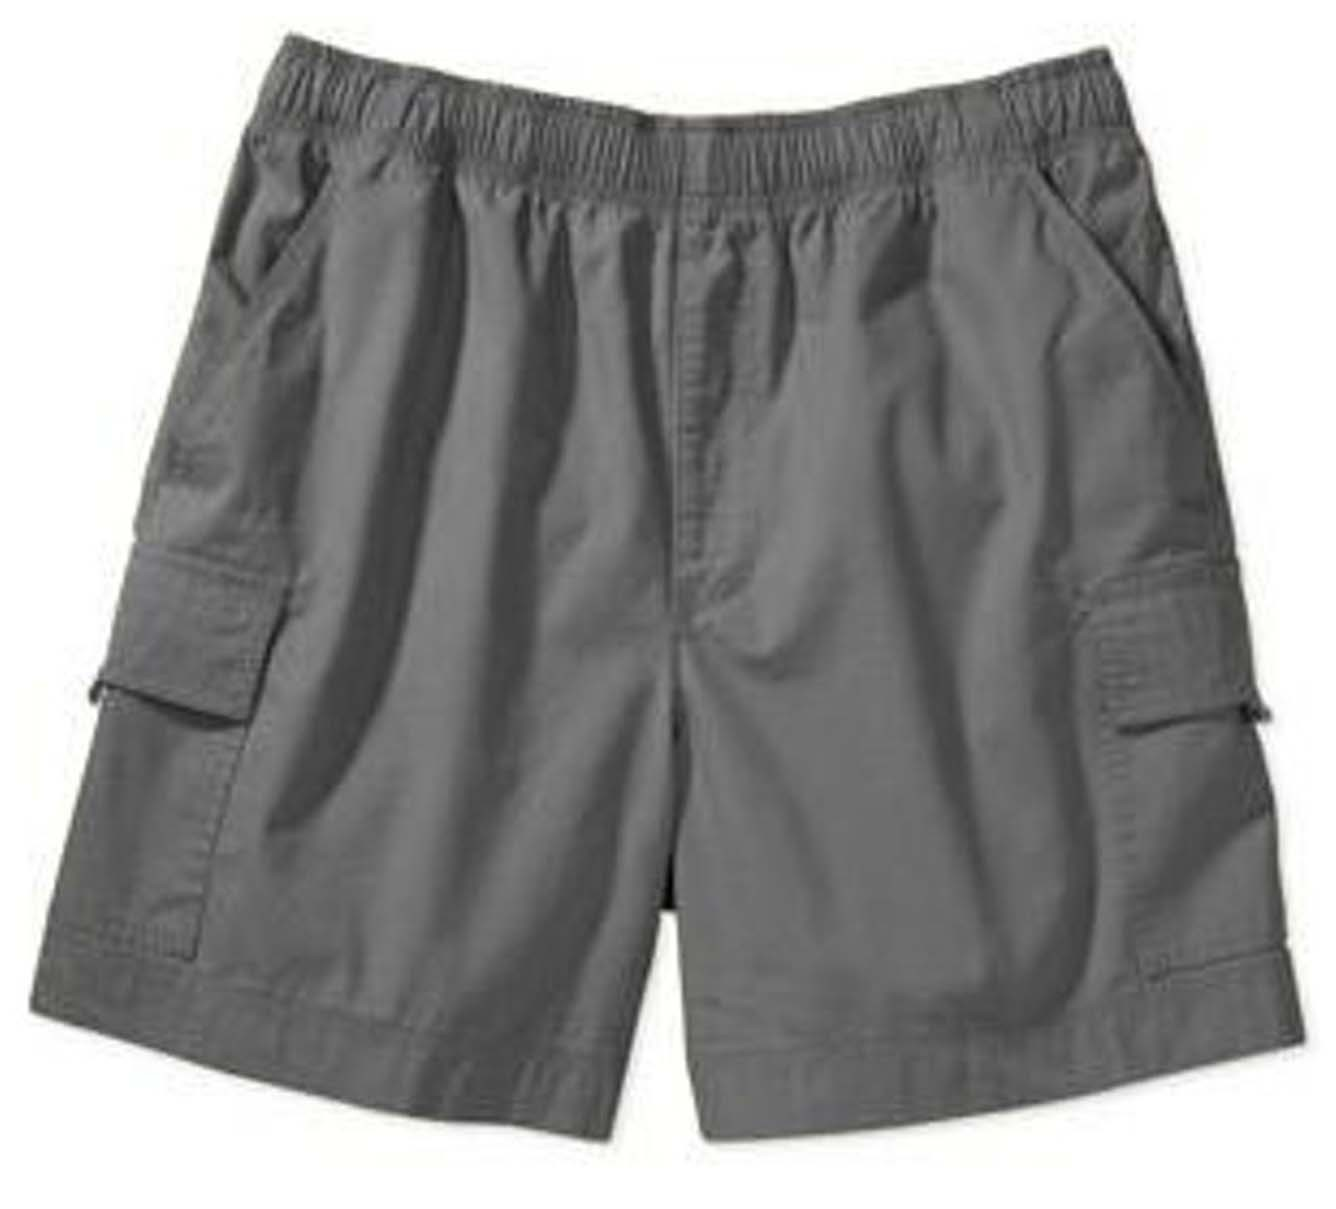 Poplin fabric cargo shorts full elastic waistband  2 side pocket 2 cargo pocket with flap 1 back patch pocket (inseam is 5 inches)